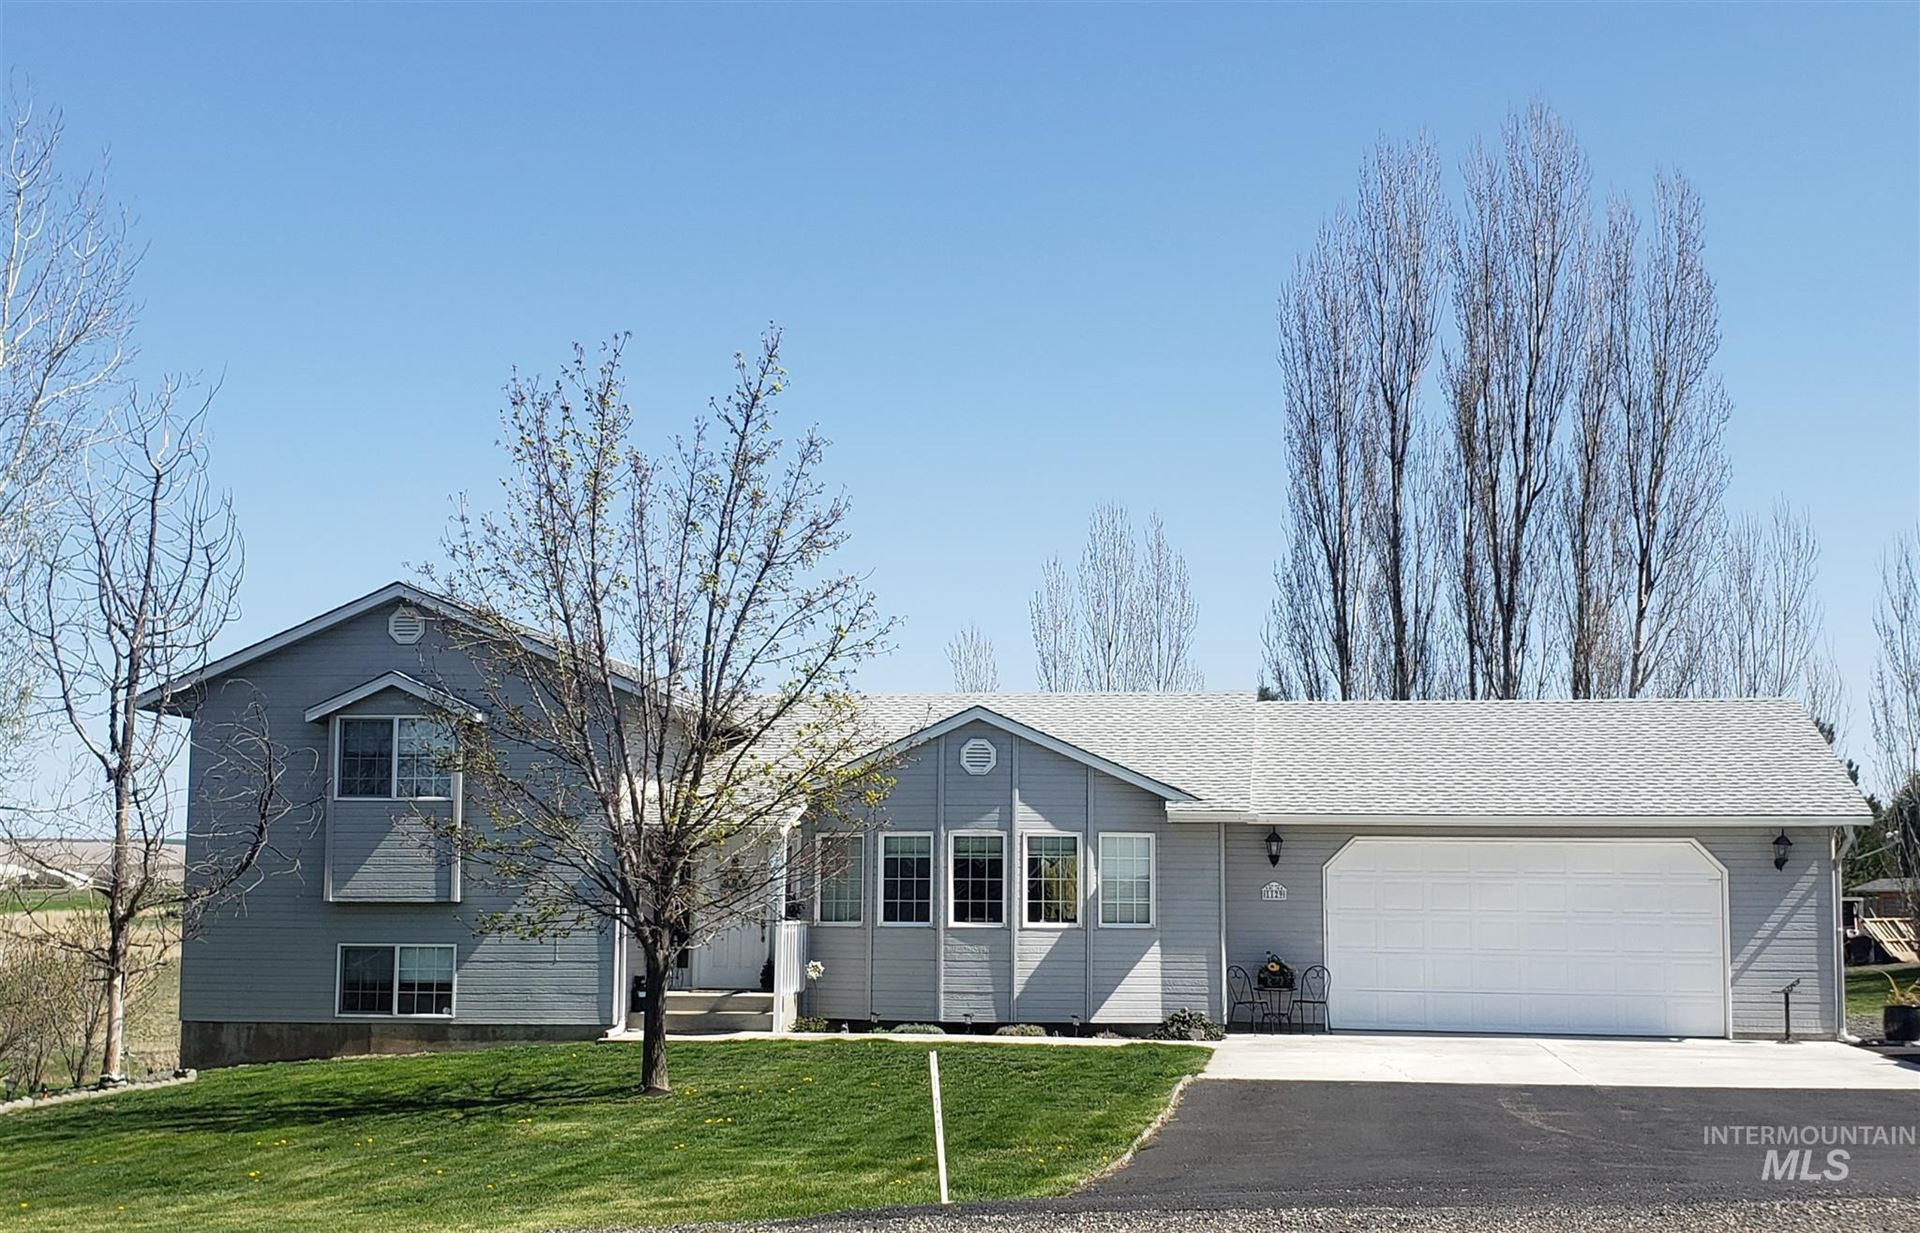 Photo of 1129 Big Horn Dr, Lewiston, ID 83501 (MLS # 98798690)